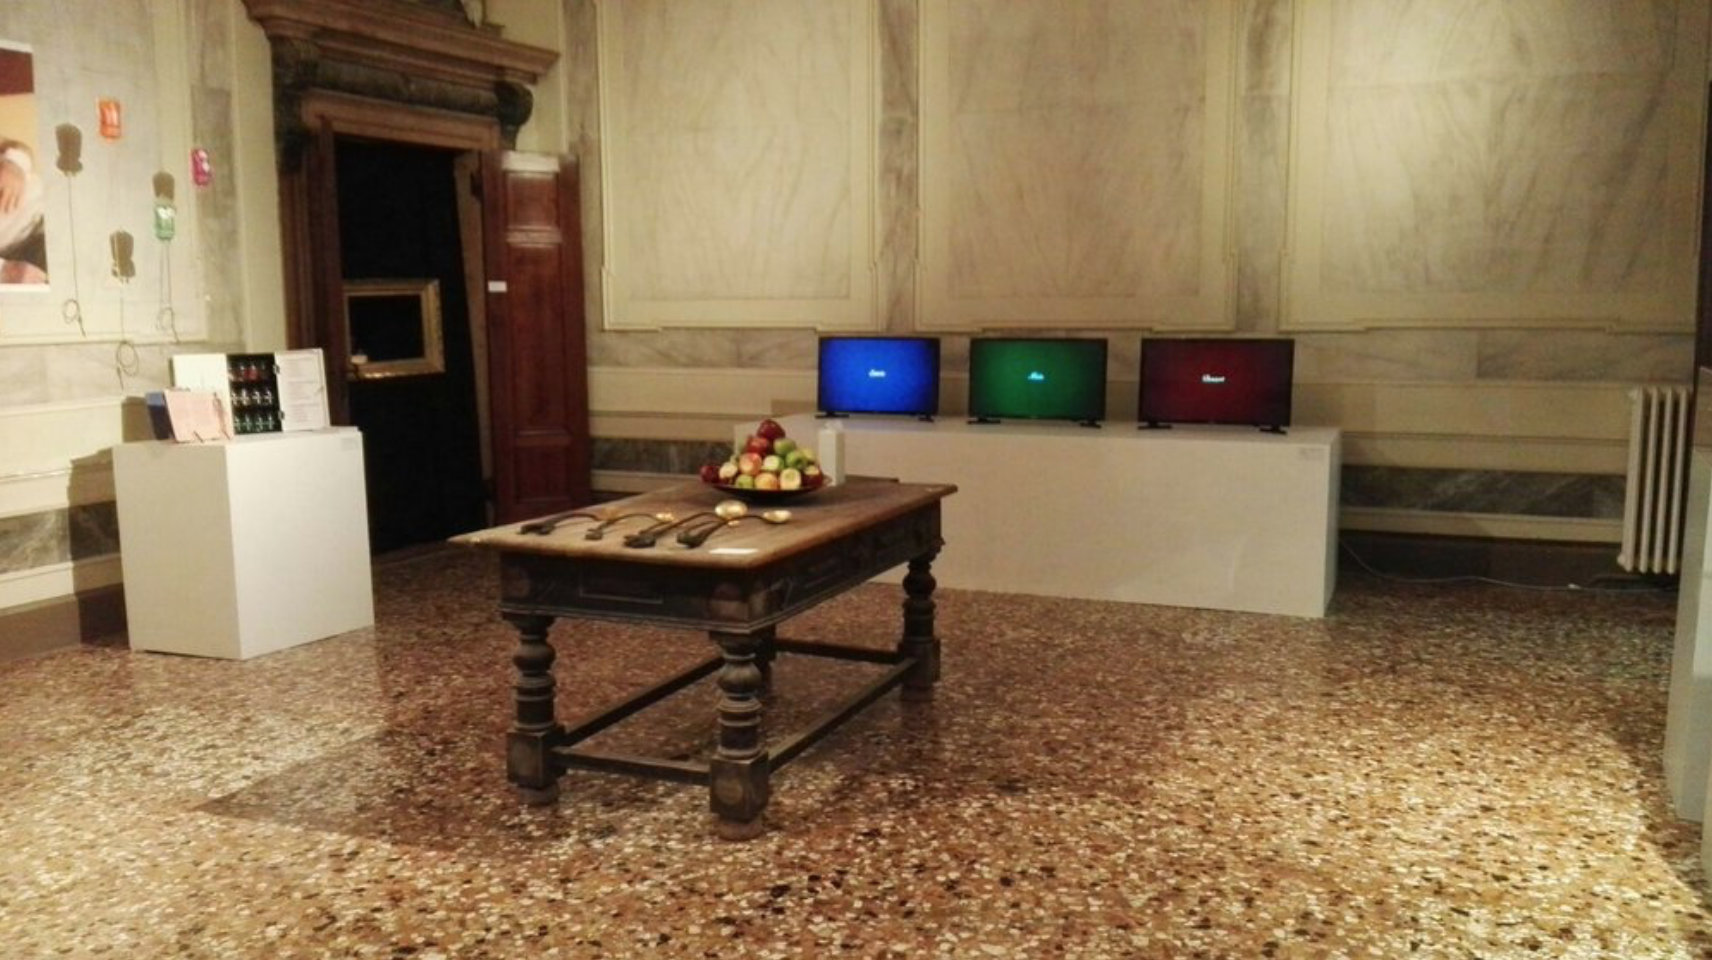 The installation at Palazzo Michiel, Venice